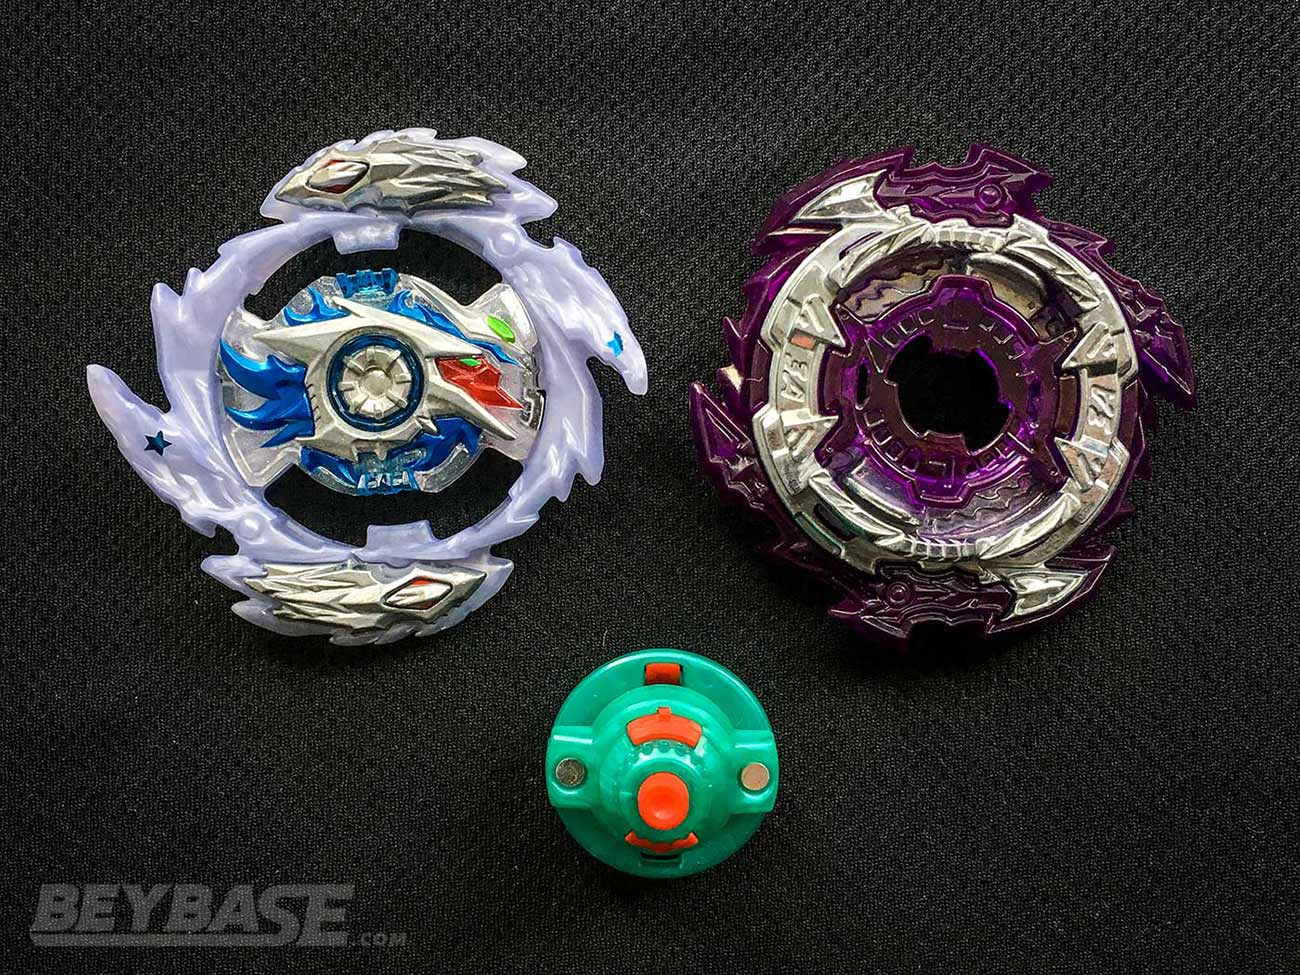 beyblade burst sparking attack combo rage helios 2 metal chip core quick dash 3a